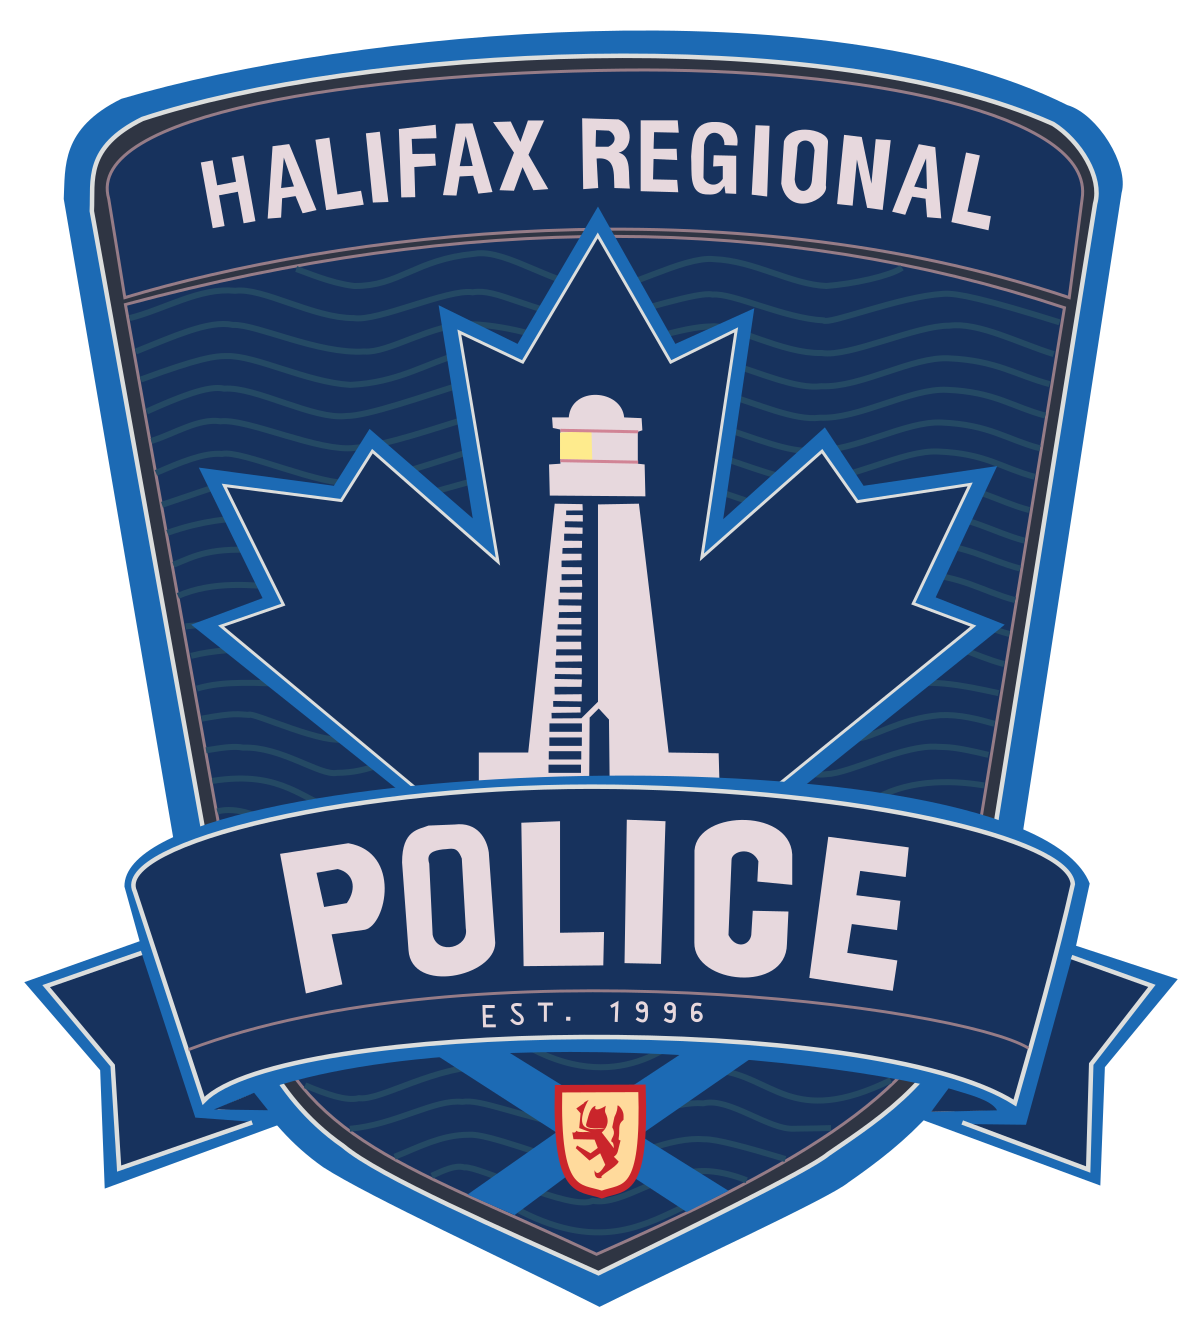 //grasshoppers.ca/wp-content/uploads/2019/01/1200px-Halifax_Regional_Police.png